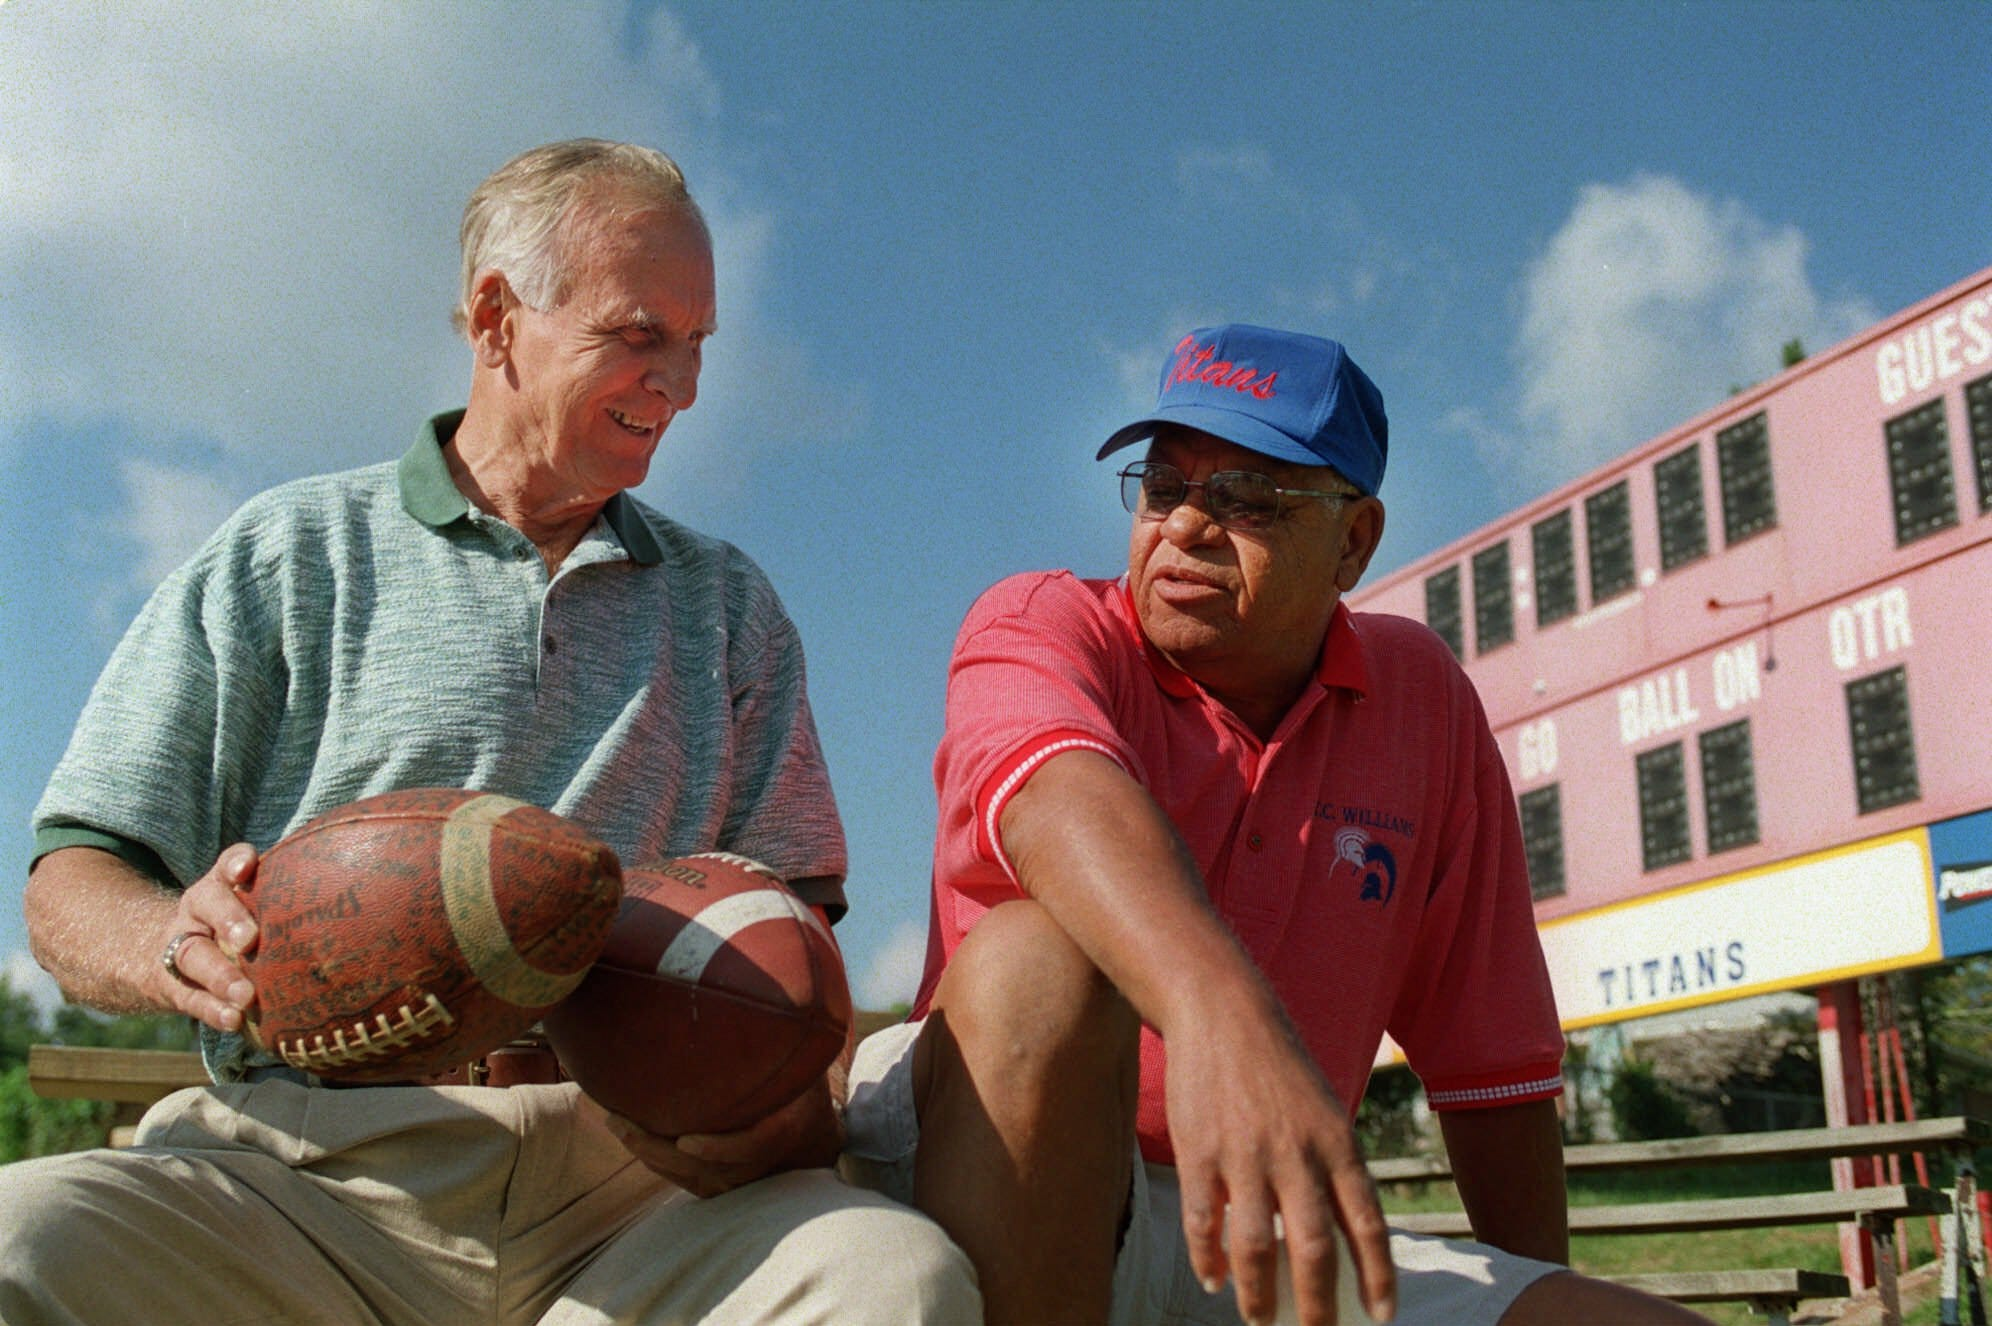 usatoday.com - Tom Schad, USA TODAY - Bill Yoast, former high school football coach portrayed in 'Remember the Titans,' dies at 94